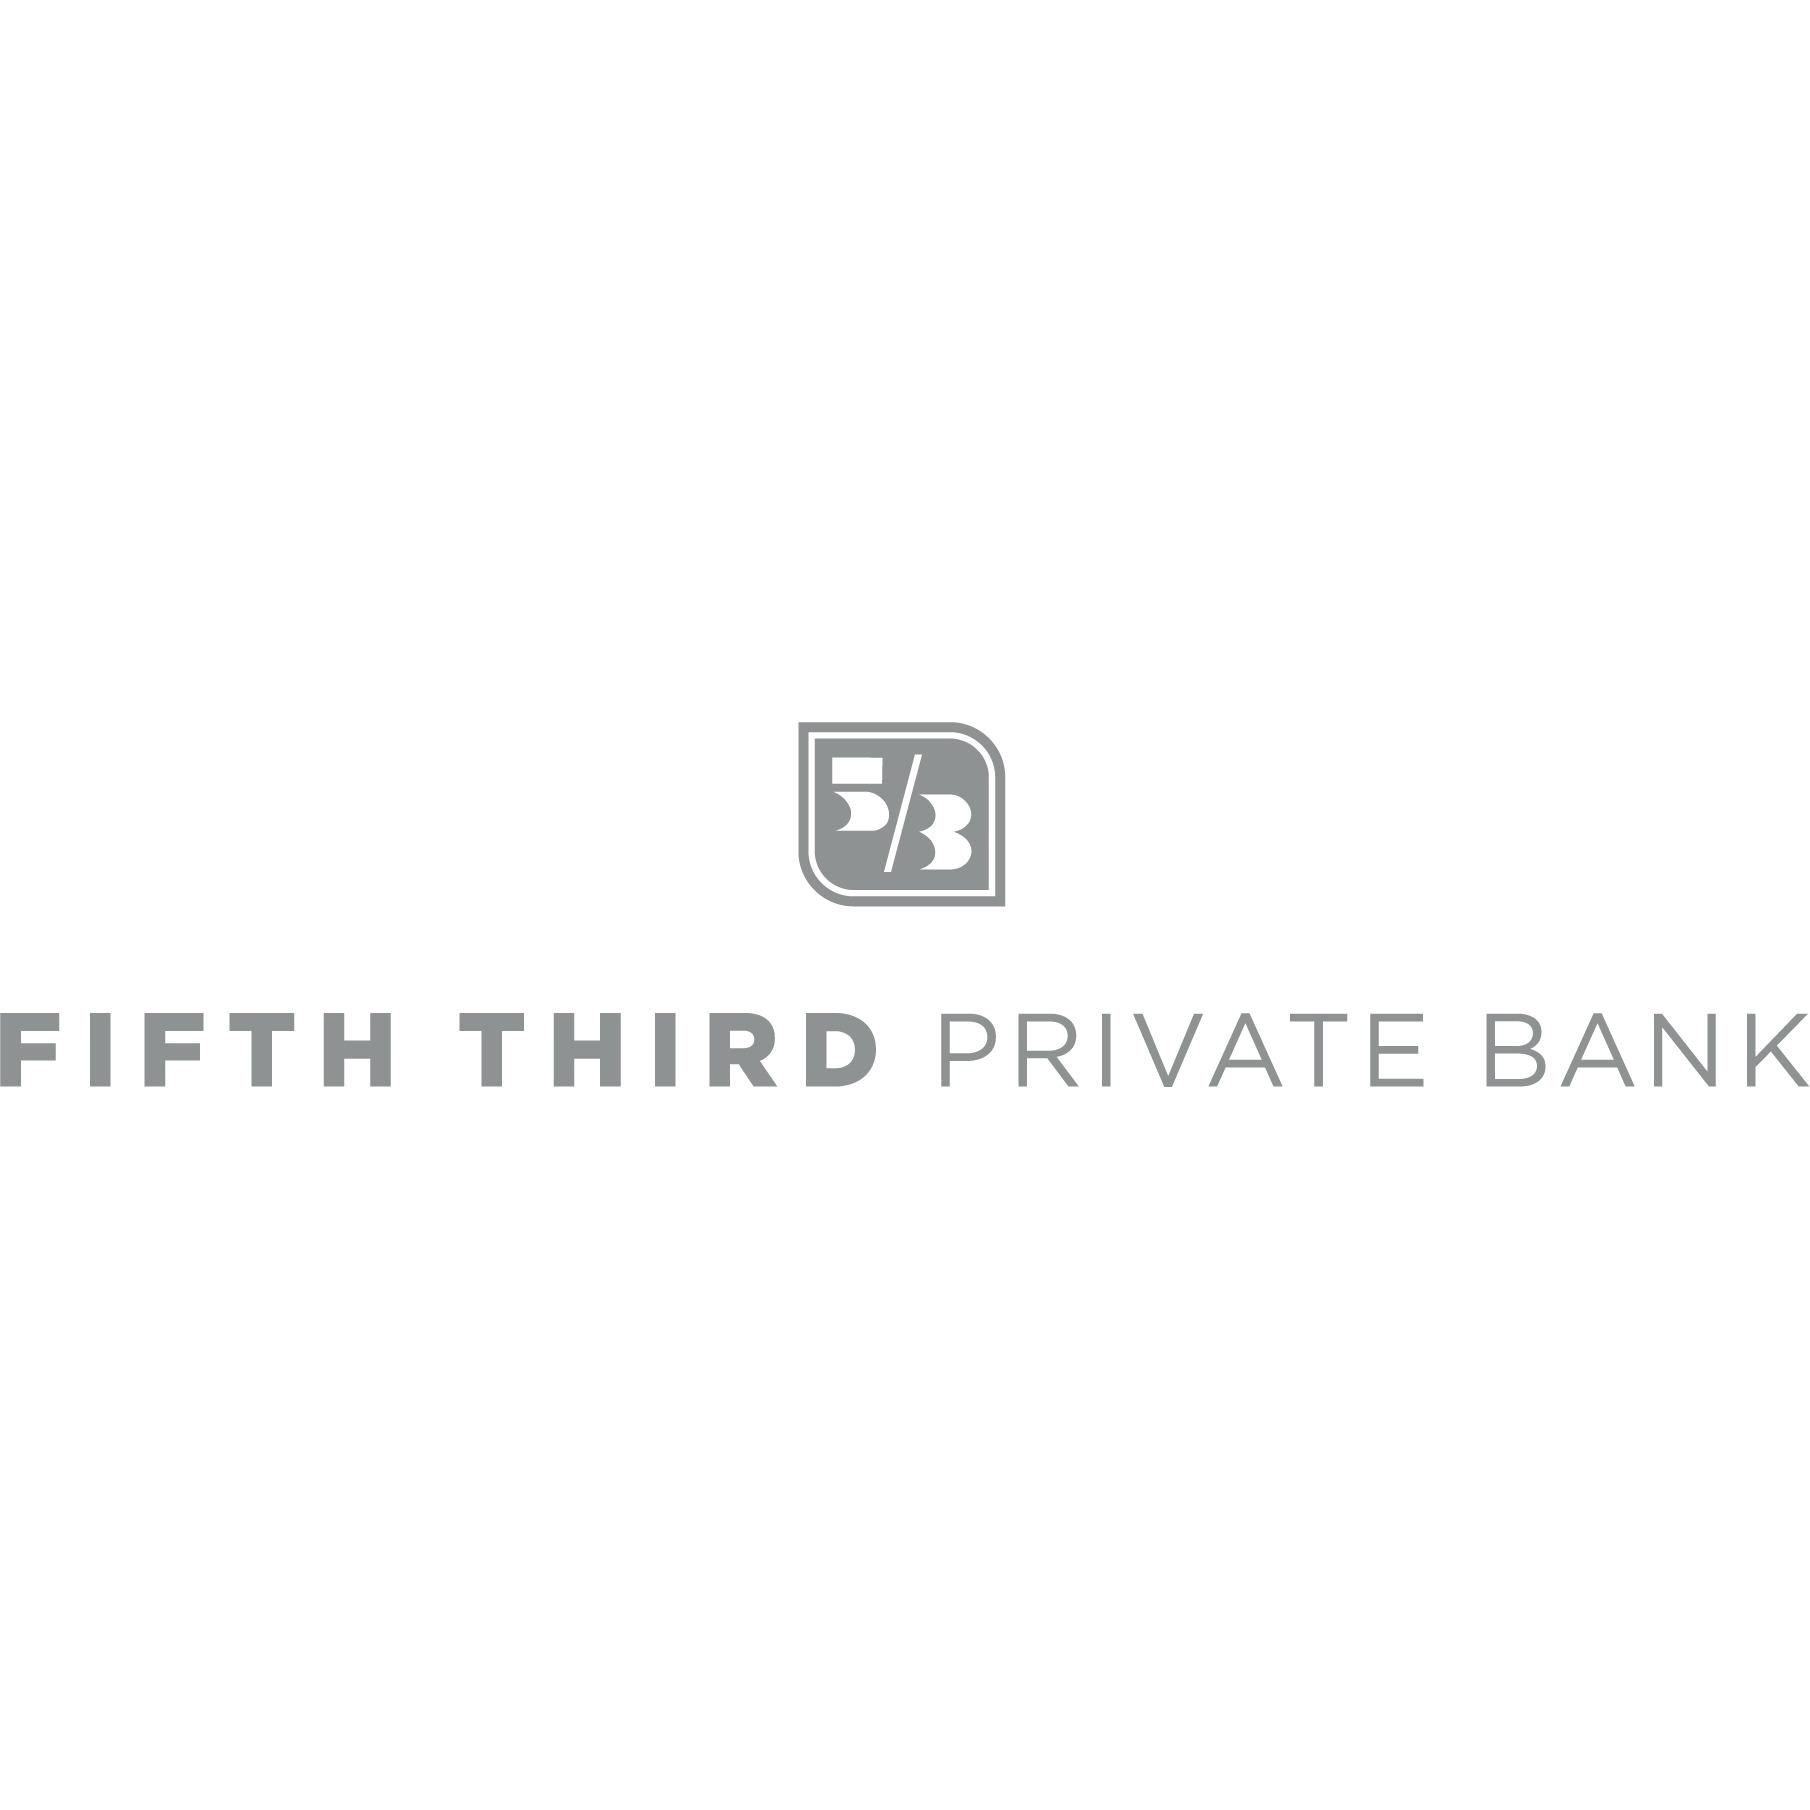 Fifth Third Private Bank - Stephanie Jones